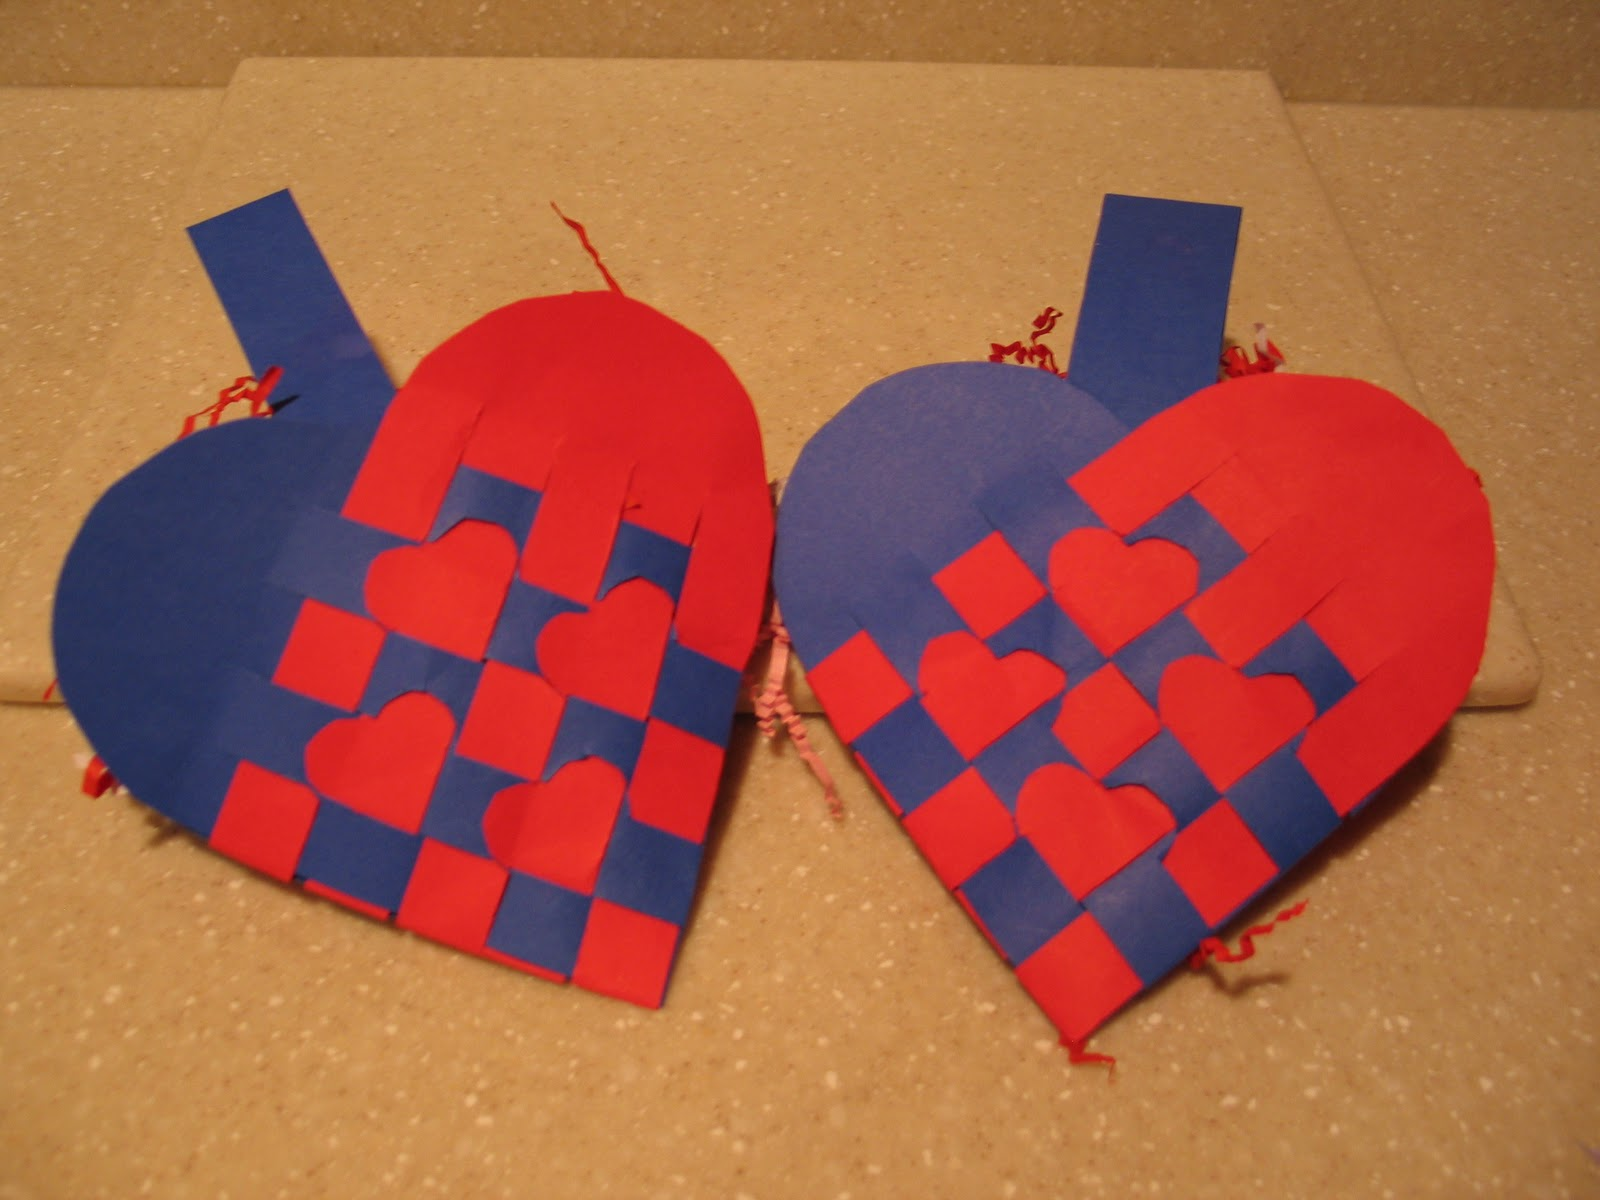 How To Make A Woven Heart Basket : Kavitha s craft projects woven heart basket for